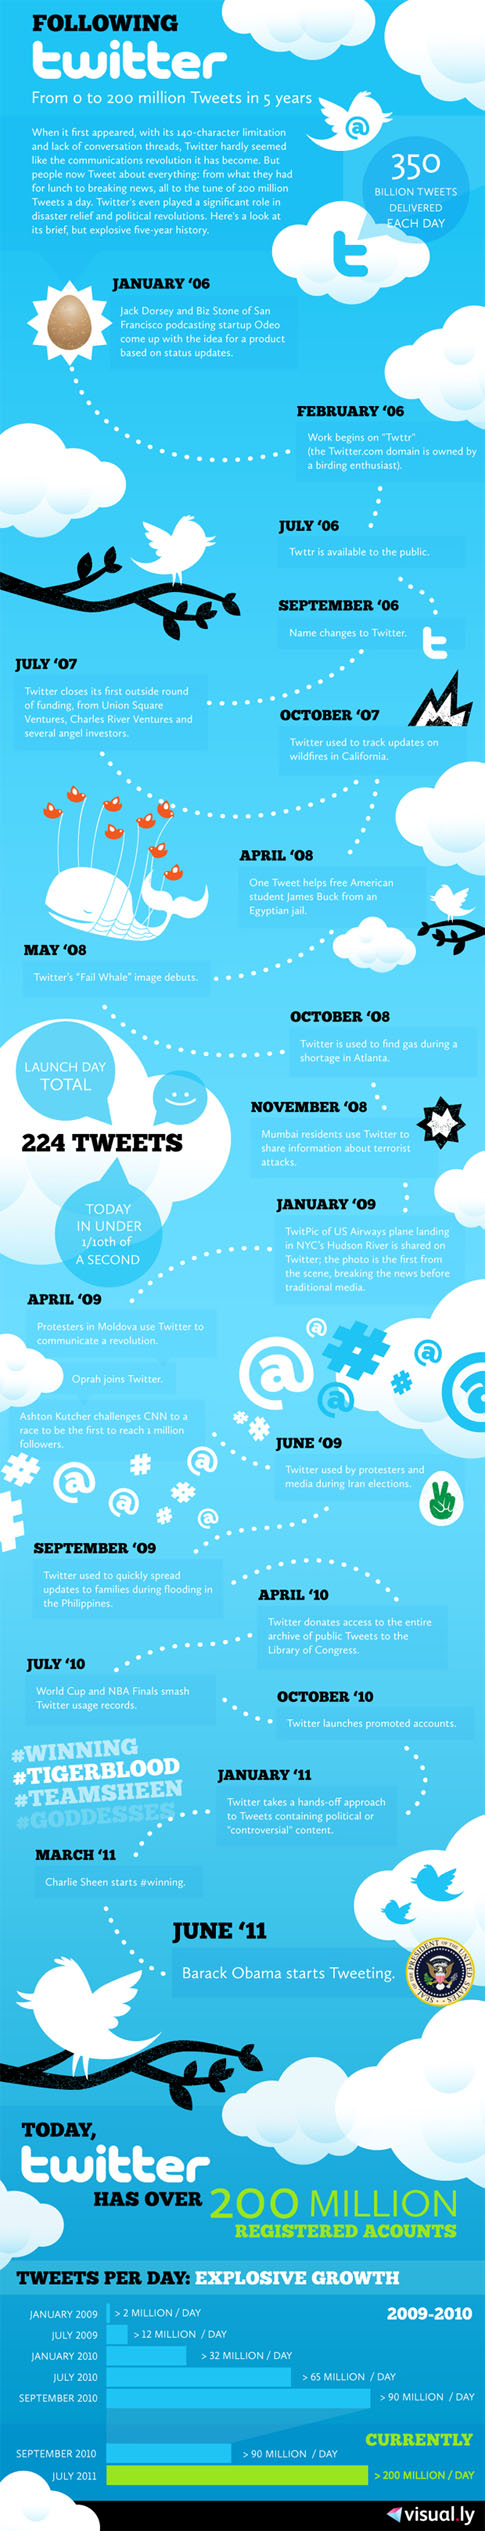 Infographic: Following Twitter